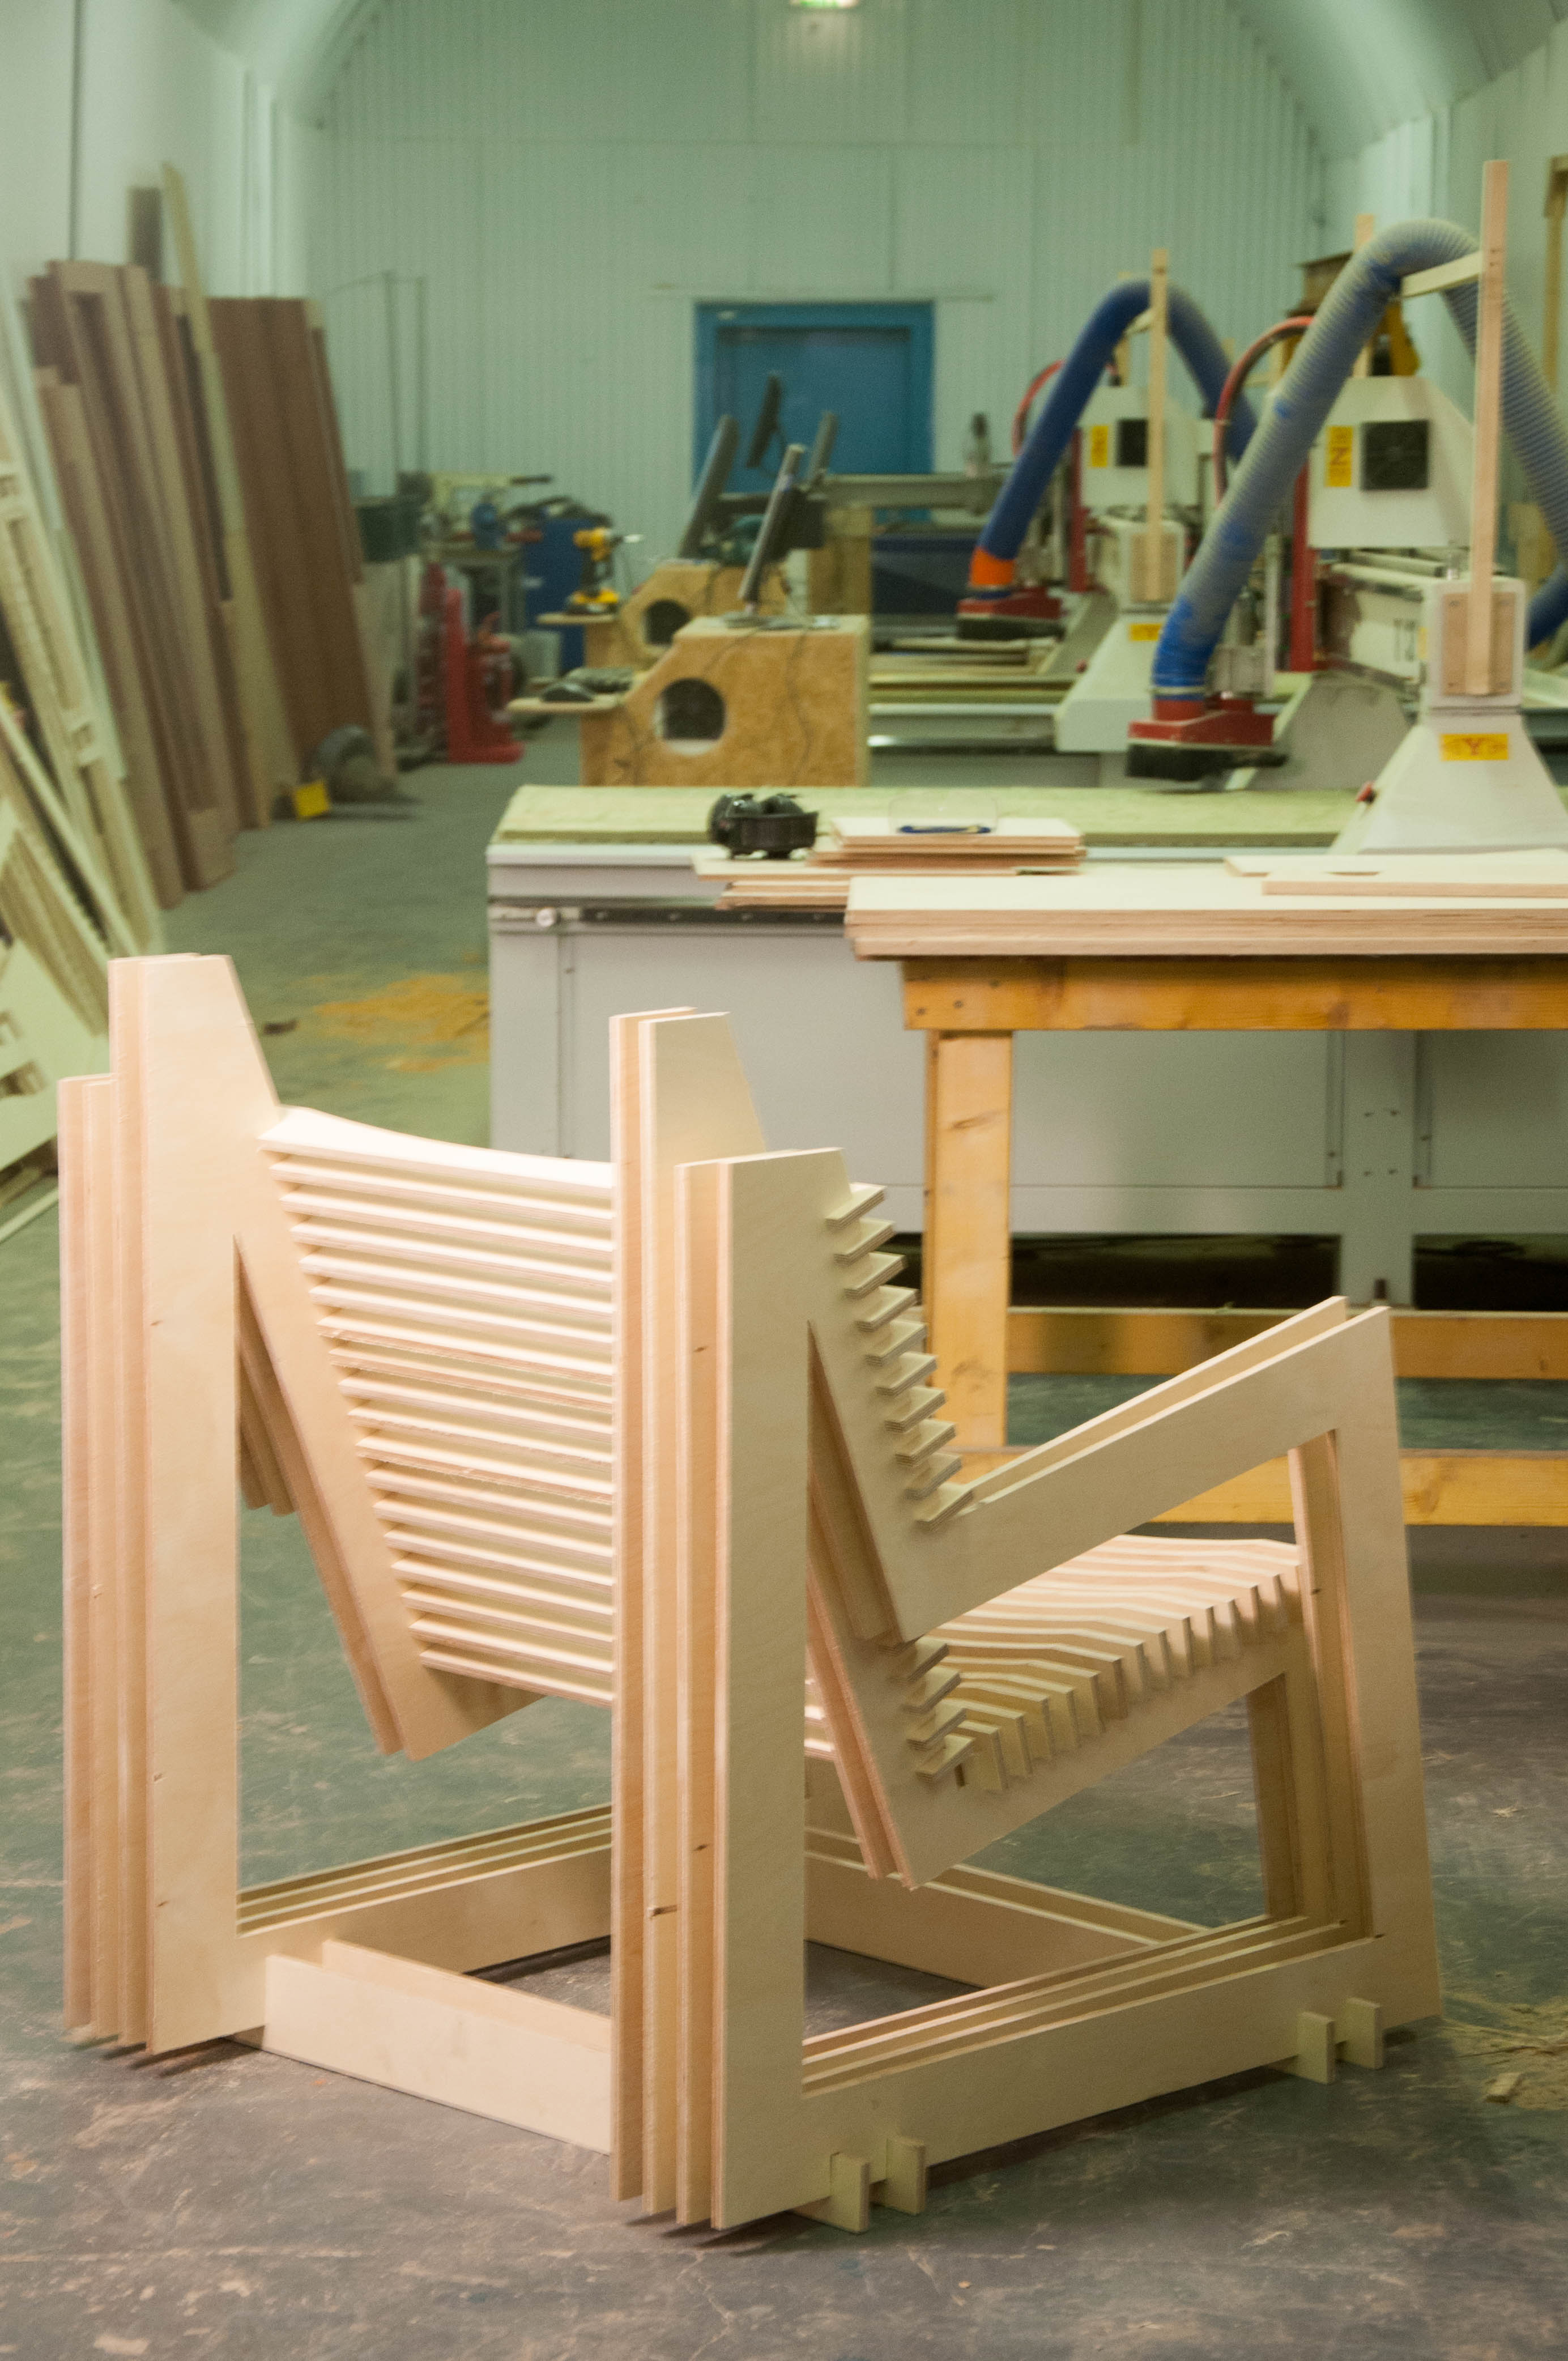 Image2: RE:FORM project chair